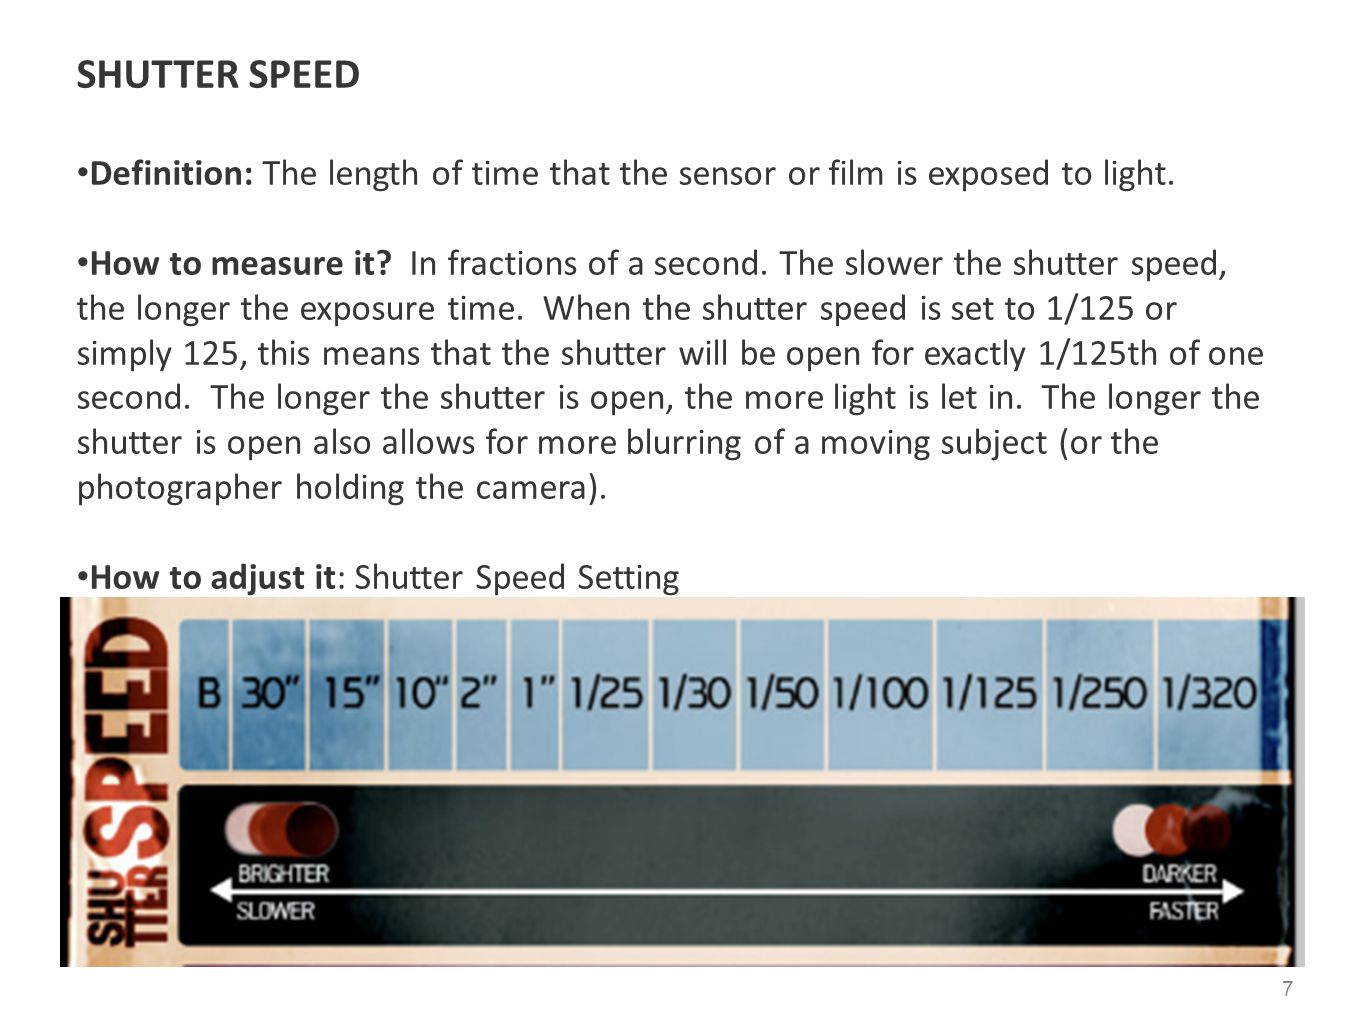 SHUTTER SPEED Definition: The length of time that the sensor or film is exposed to light.